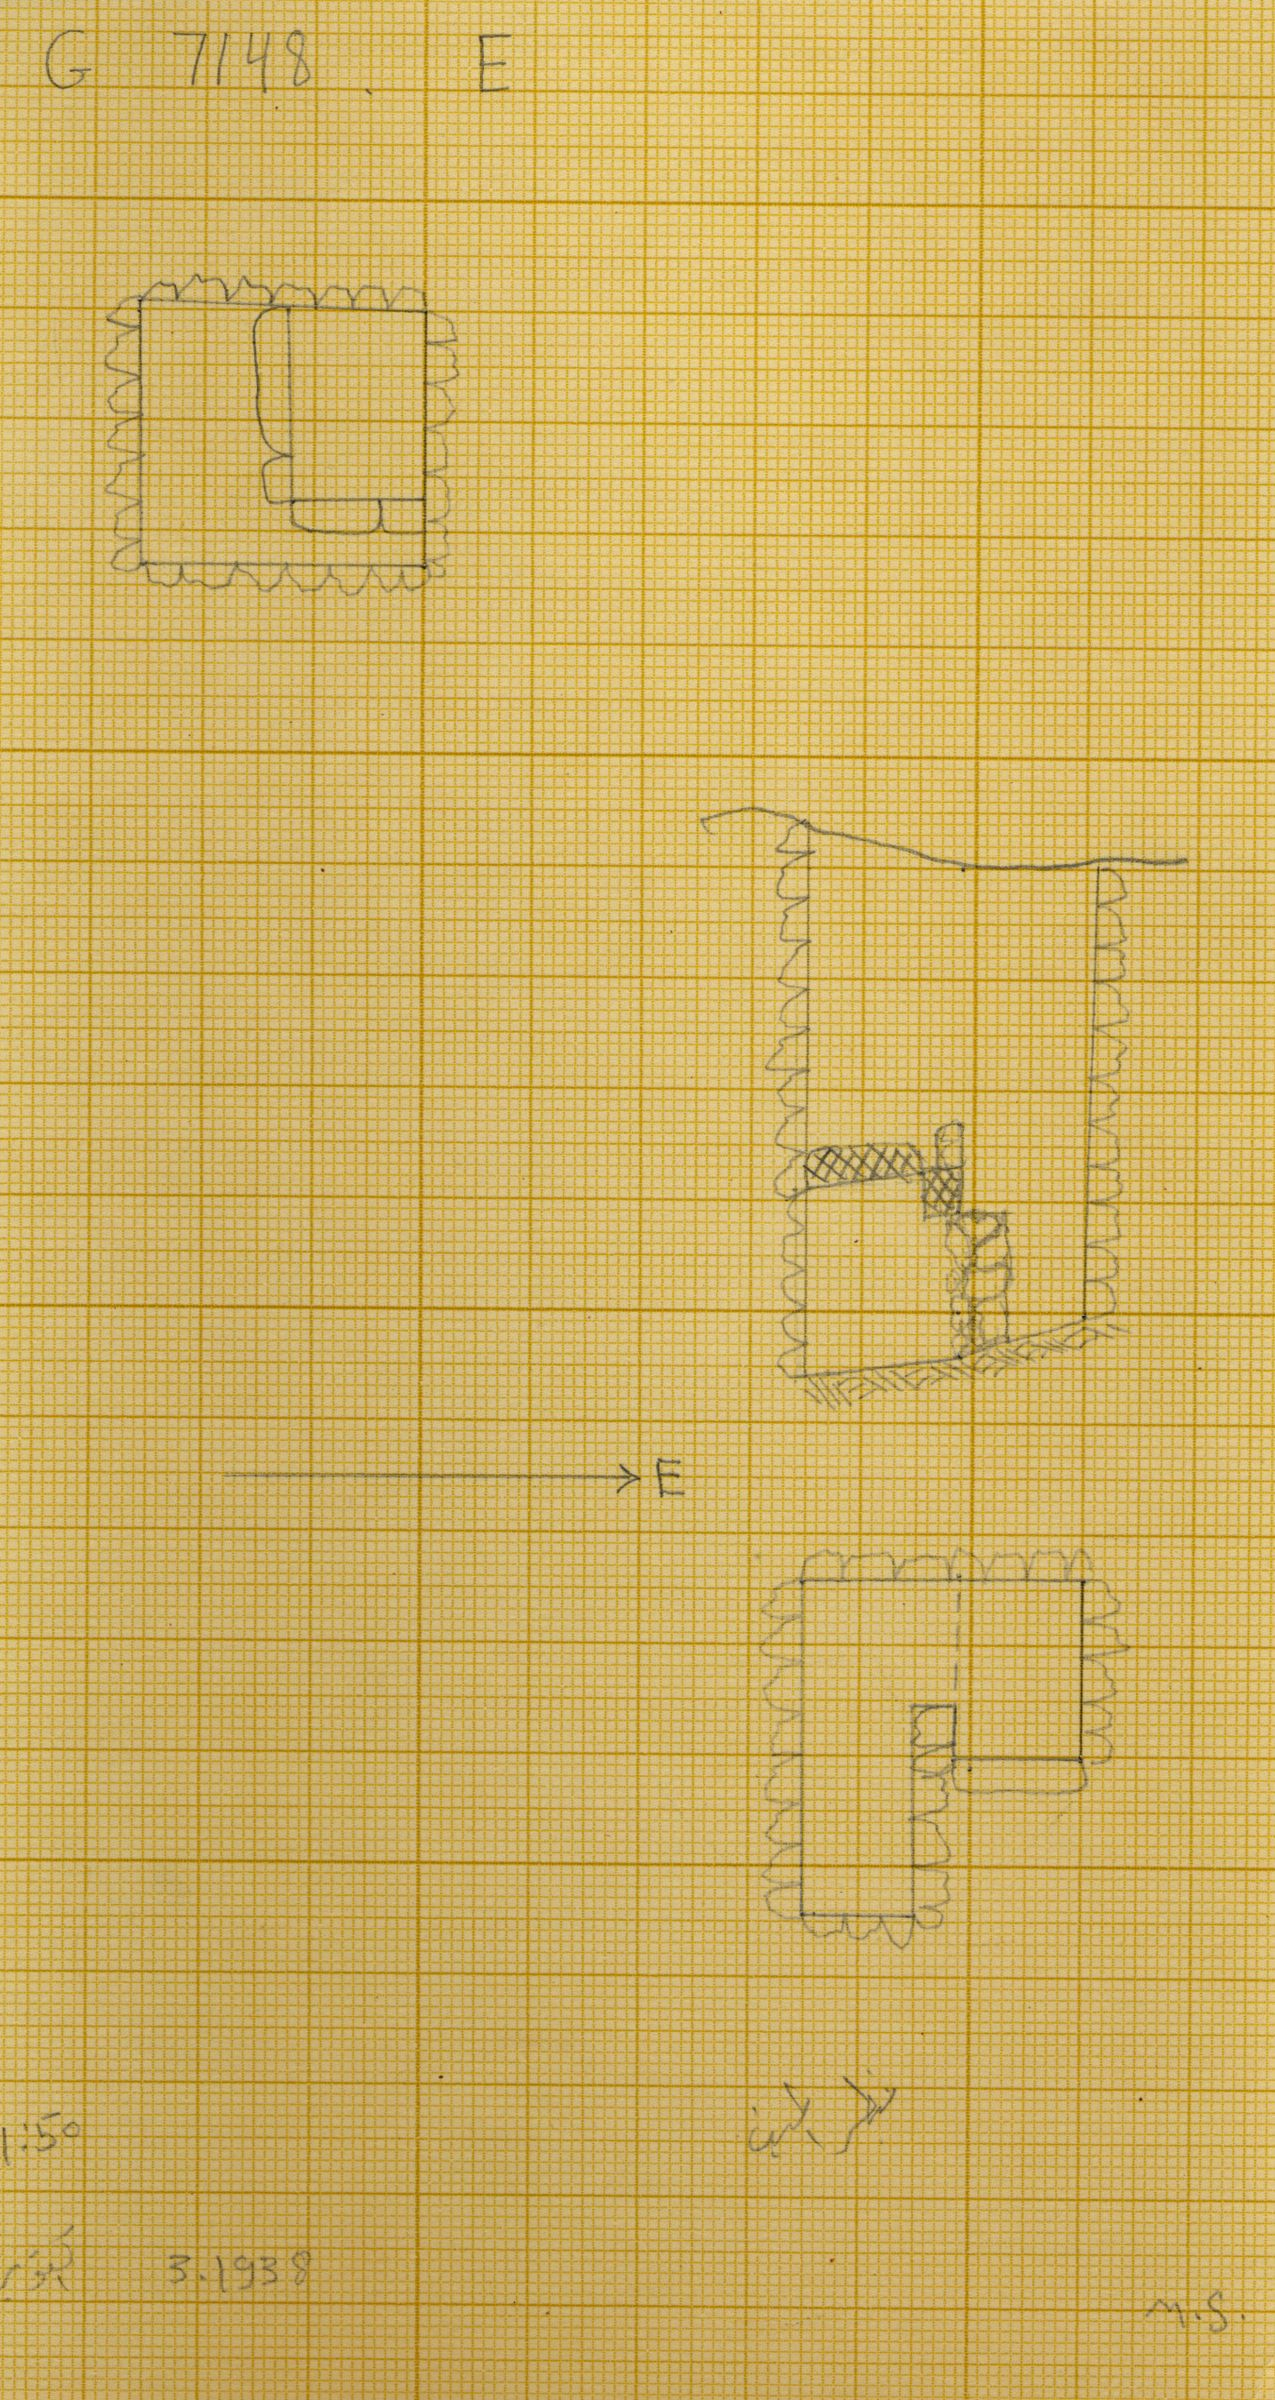 Maps and plans: G 7148+7149: G 7148, Shaft E